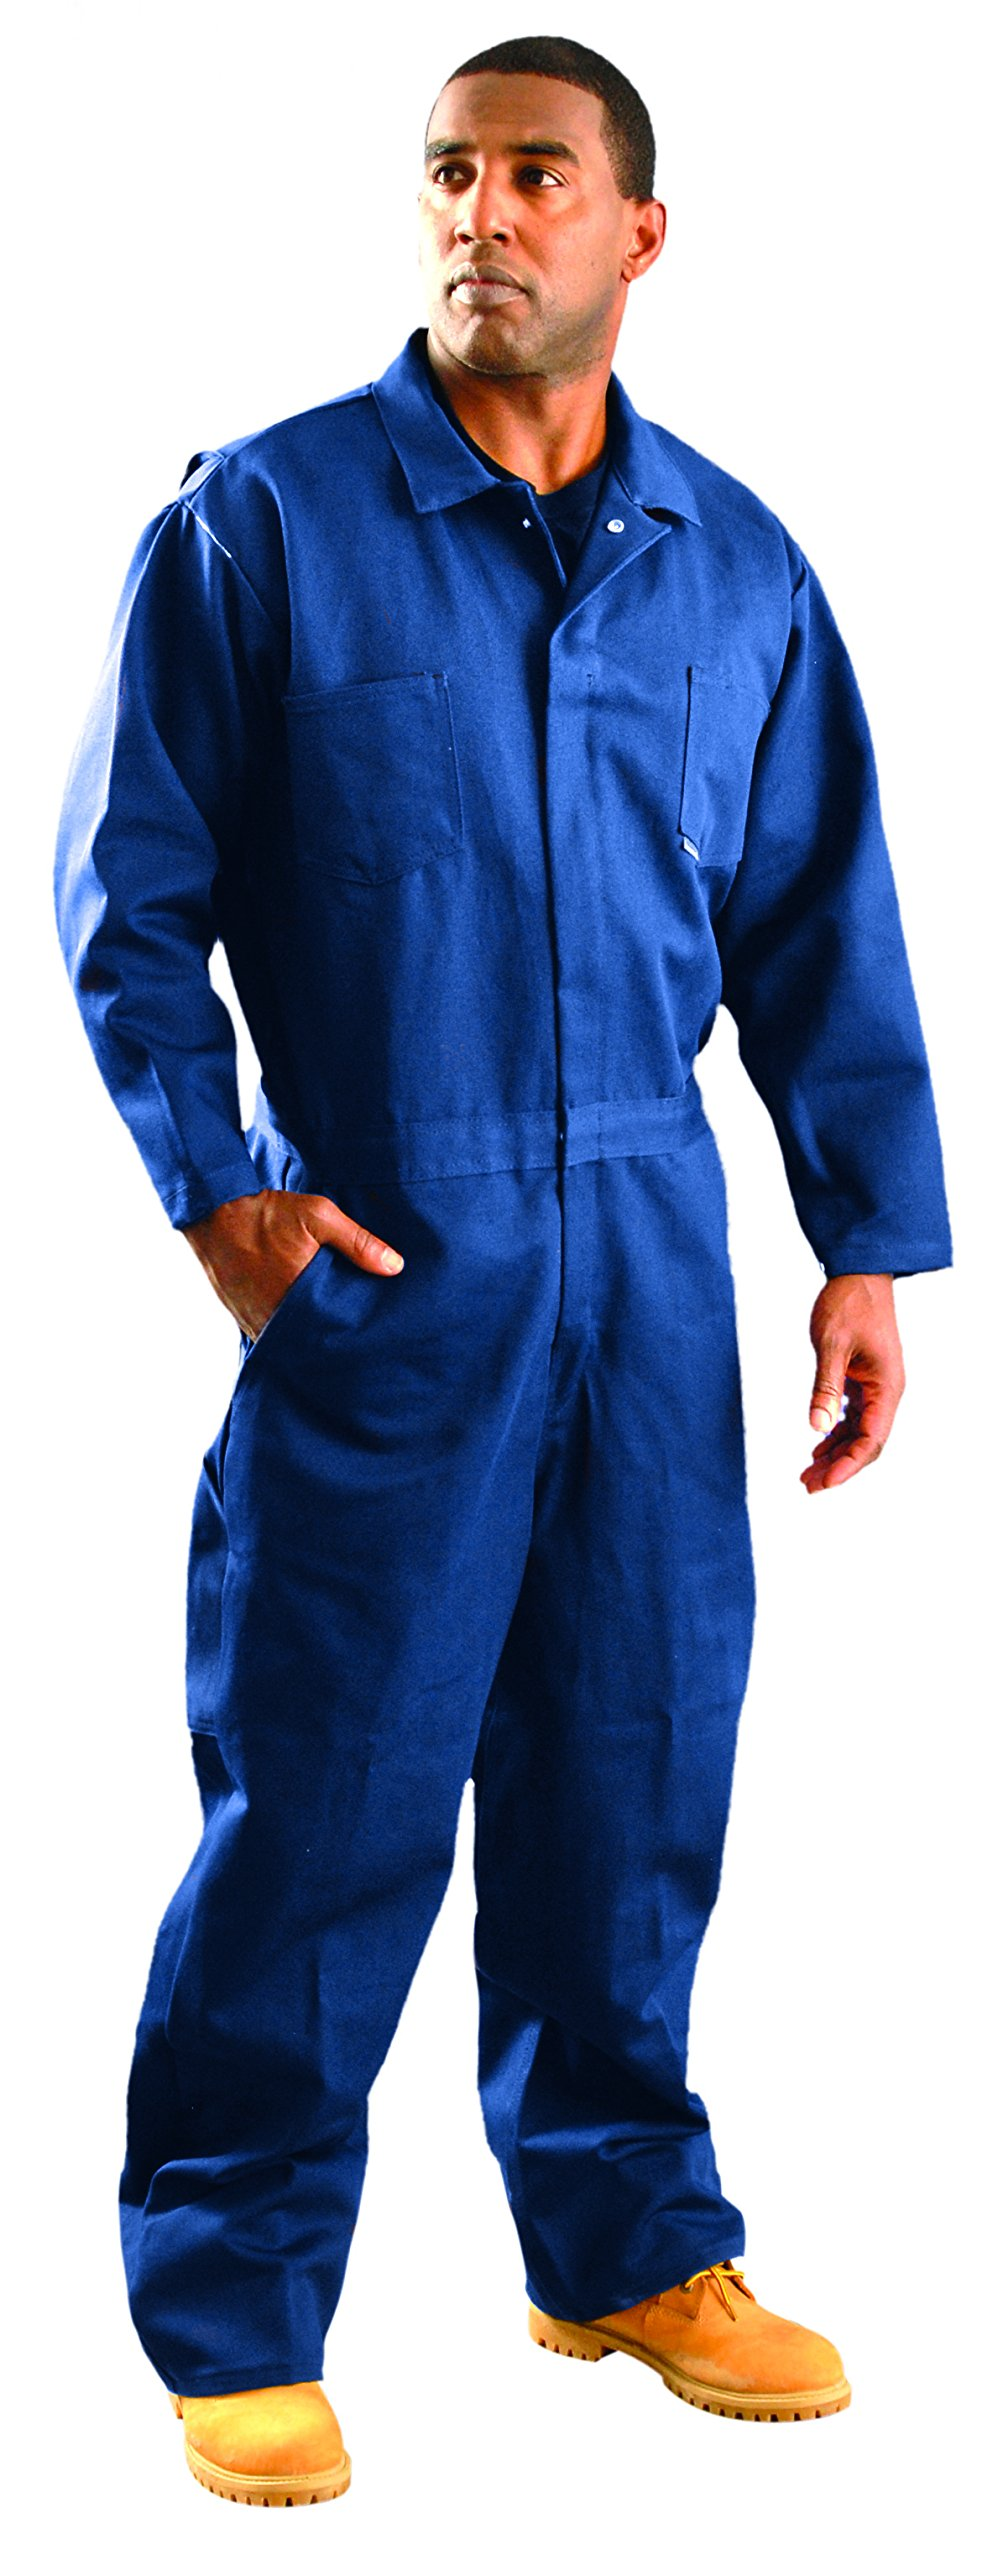 OccuNomix G909INB-S Classic Indura Flame Resistant Coverall HRC 2, 9 oz, Navy Blue, Small